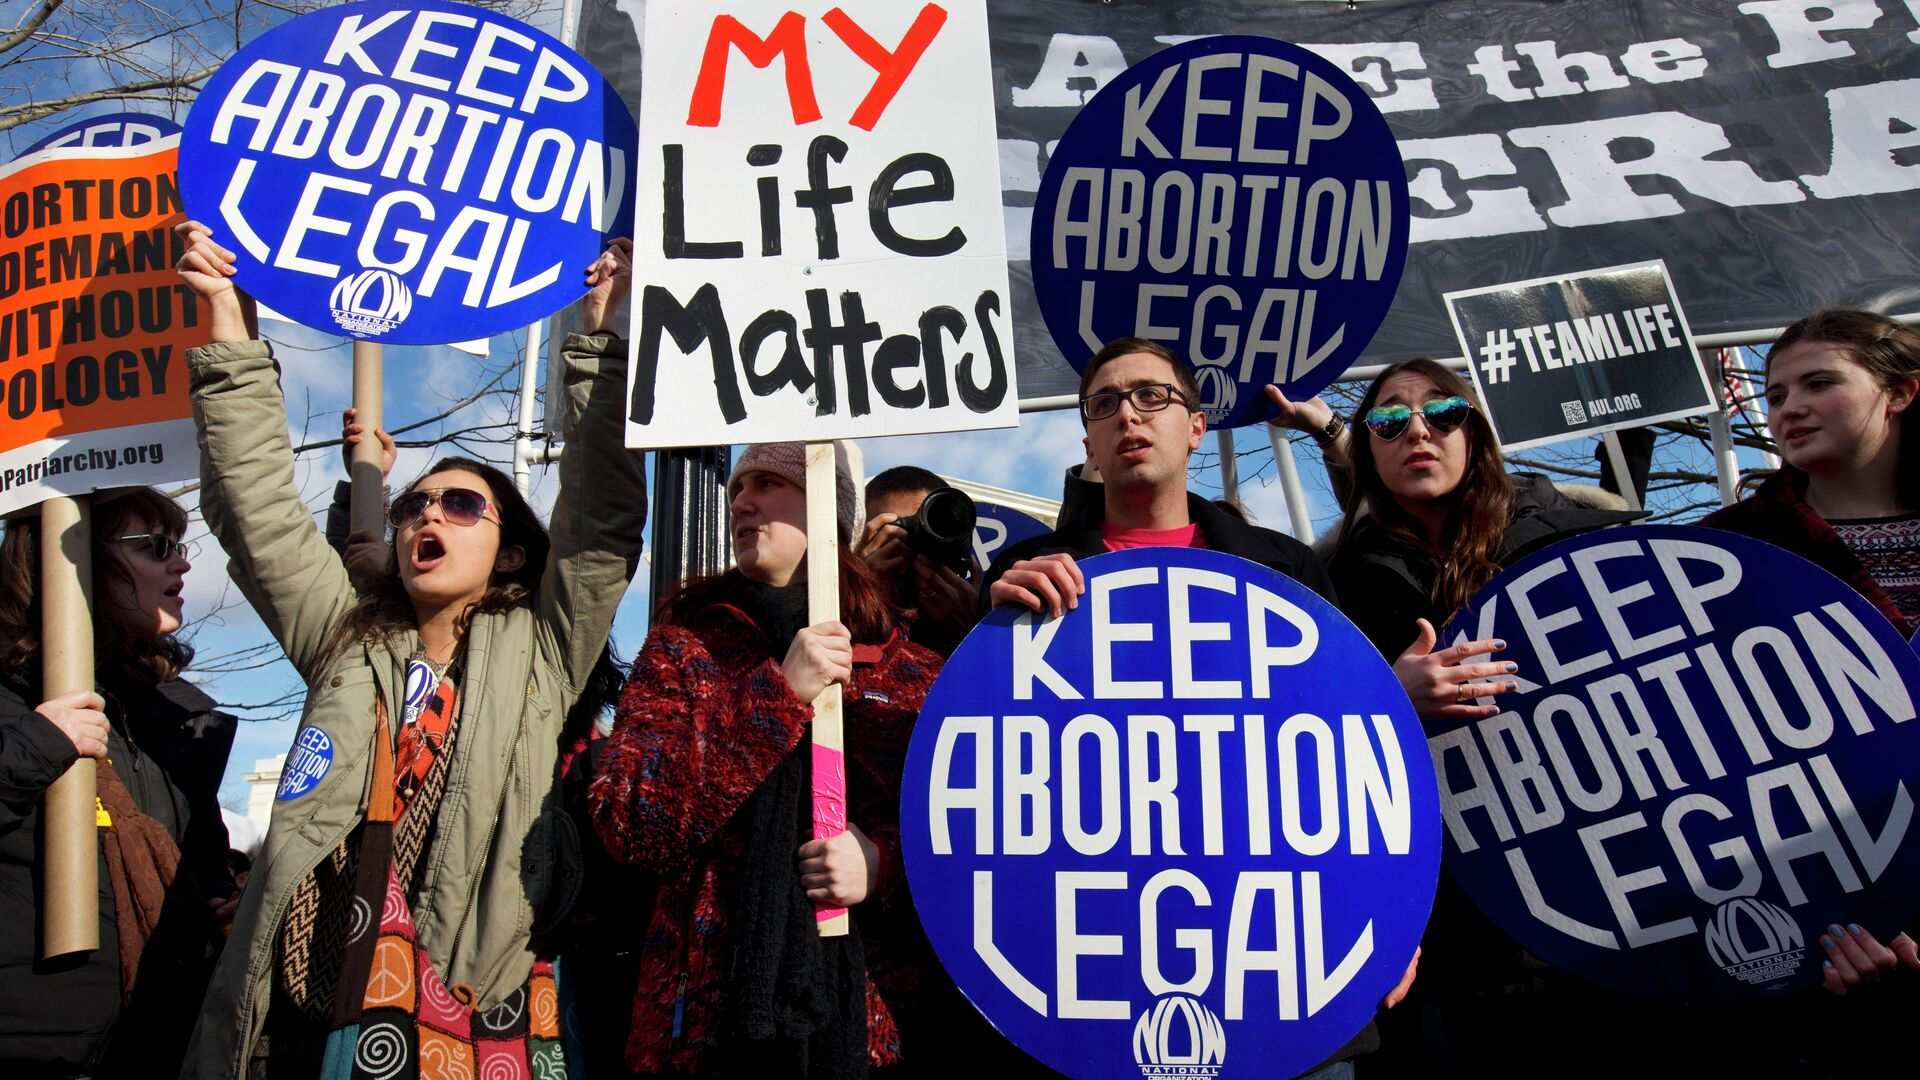 Abortion rights advocates hold signs while anti-abortion demonstrators walk by during the annual March for Life in Washington, DC. - Sputnik International, 1920, 23.09.2021